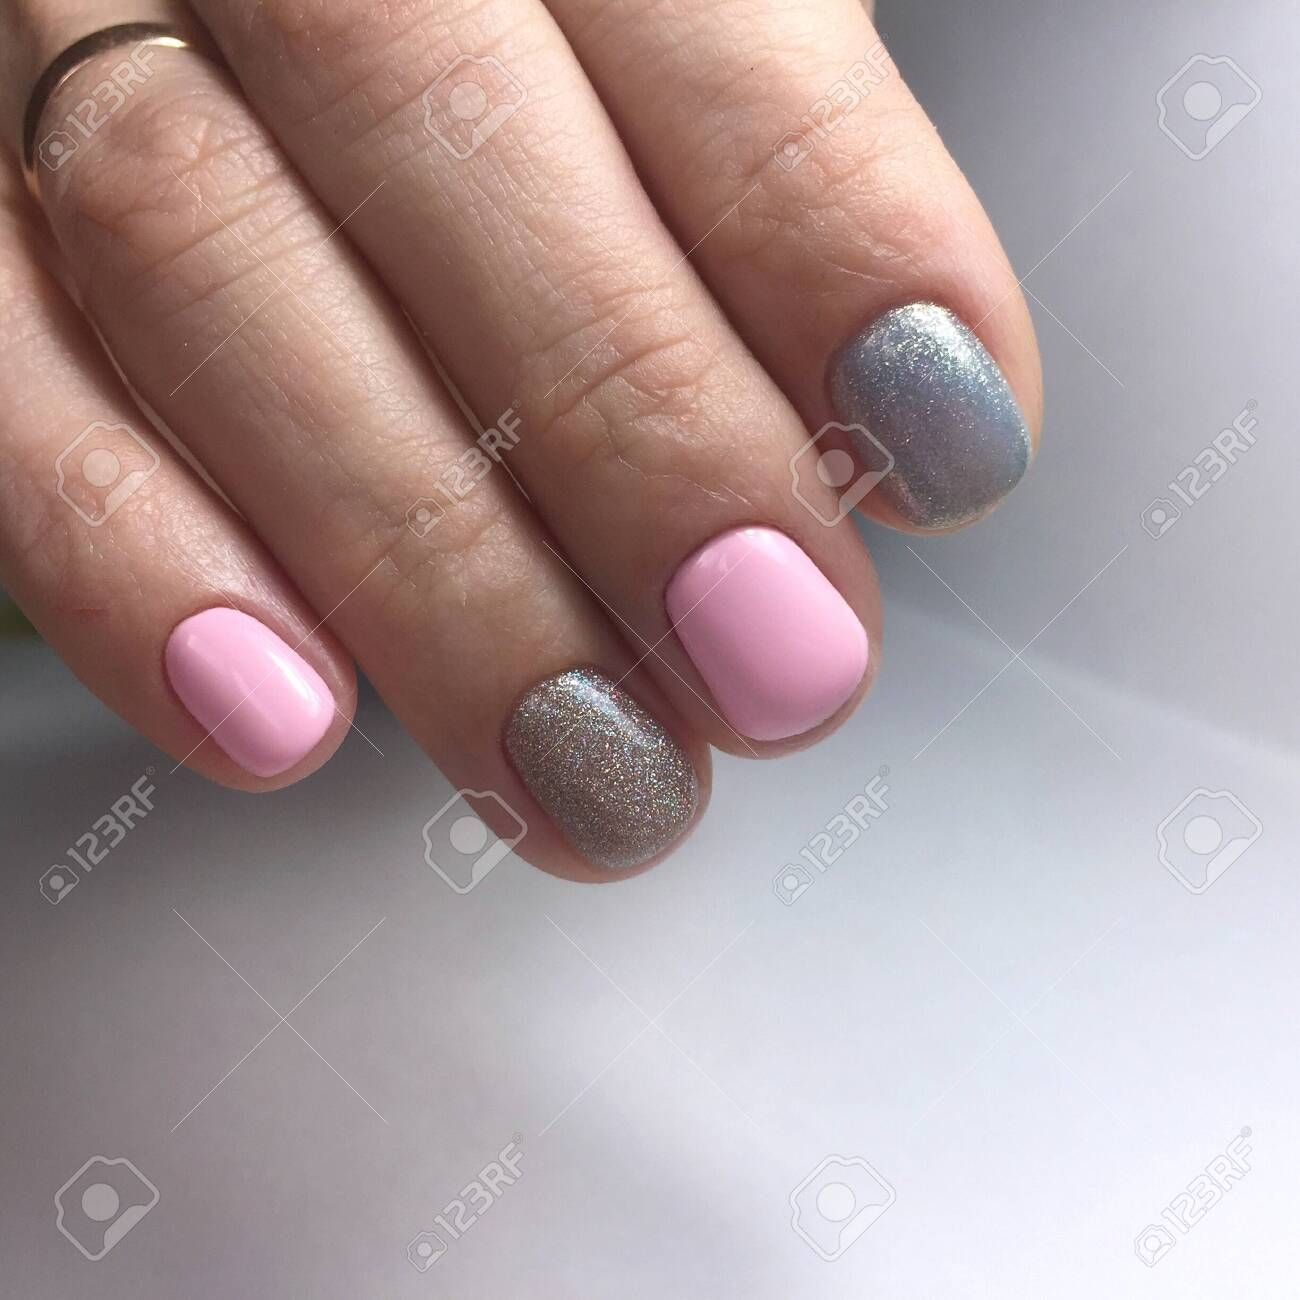 Manicure Of Different Colors On Nails Female Manicure Affiliate Colors Manicure Nails Manicure Female In 2020 Nails Manicure Art Logo